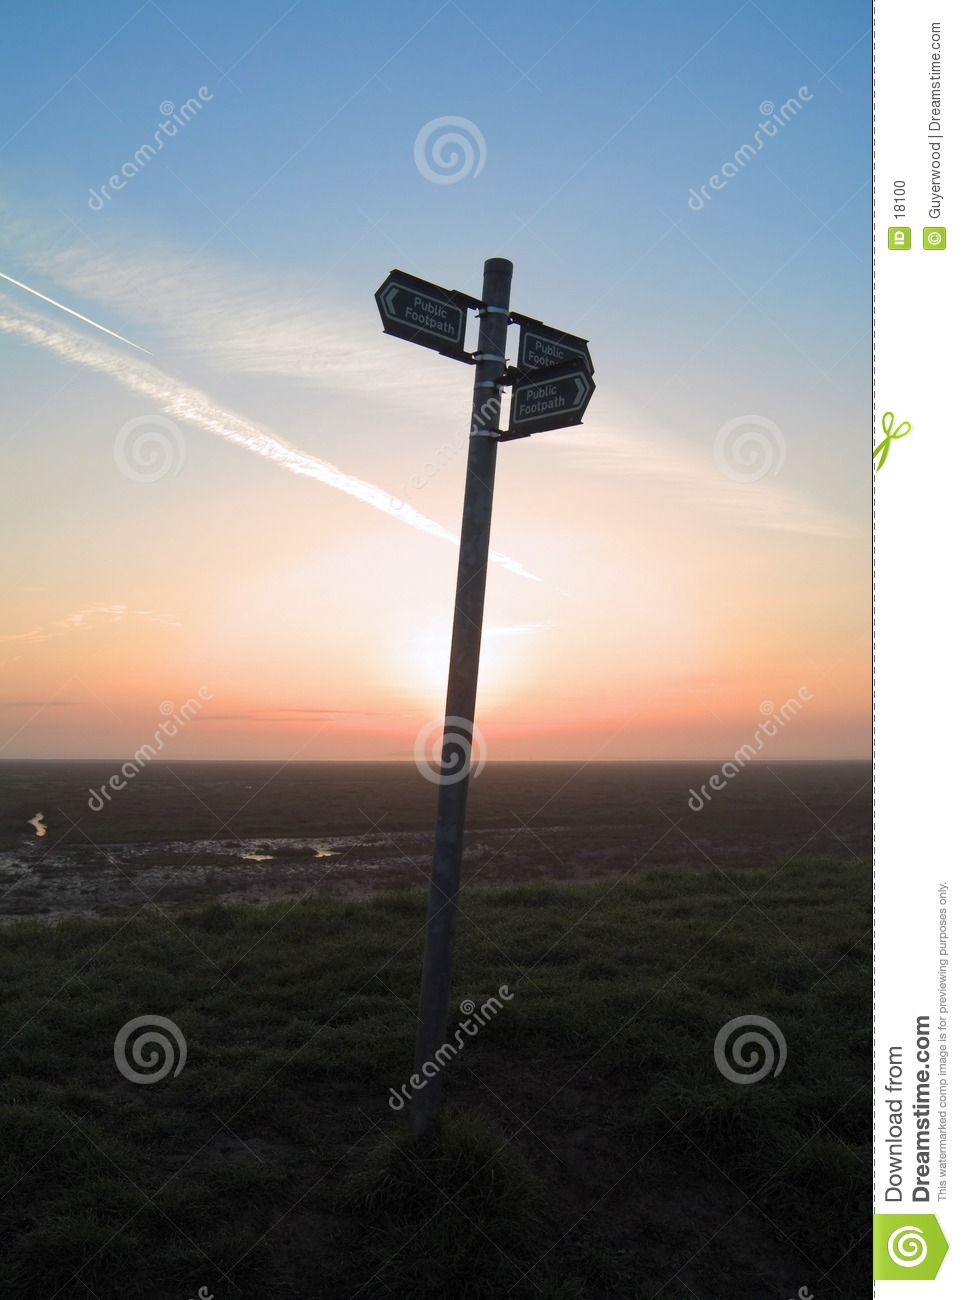 Signpost in the sky